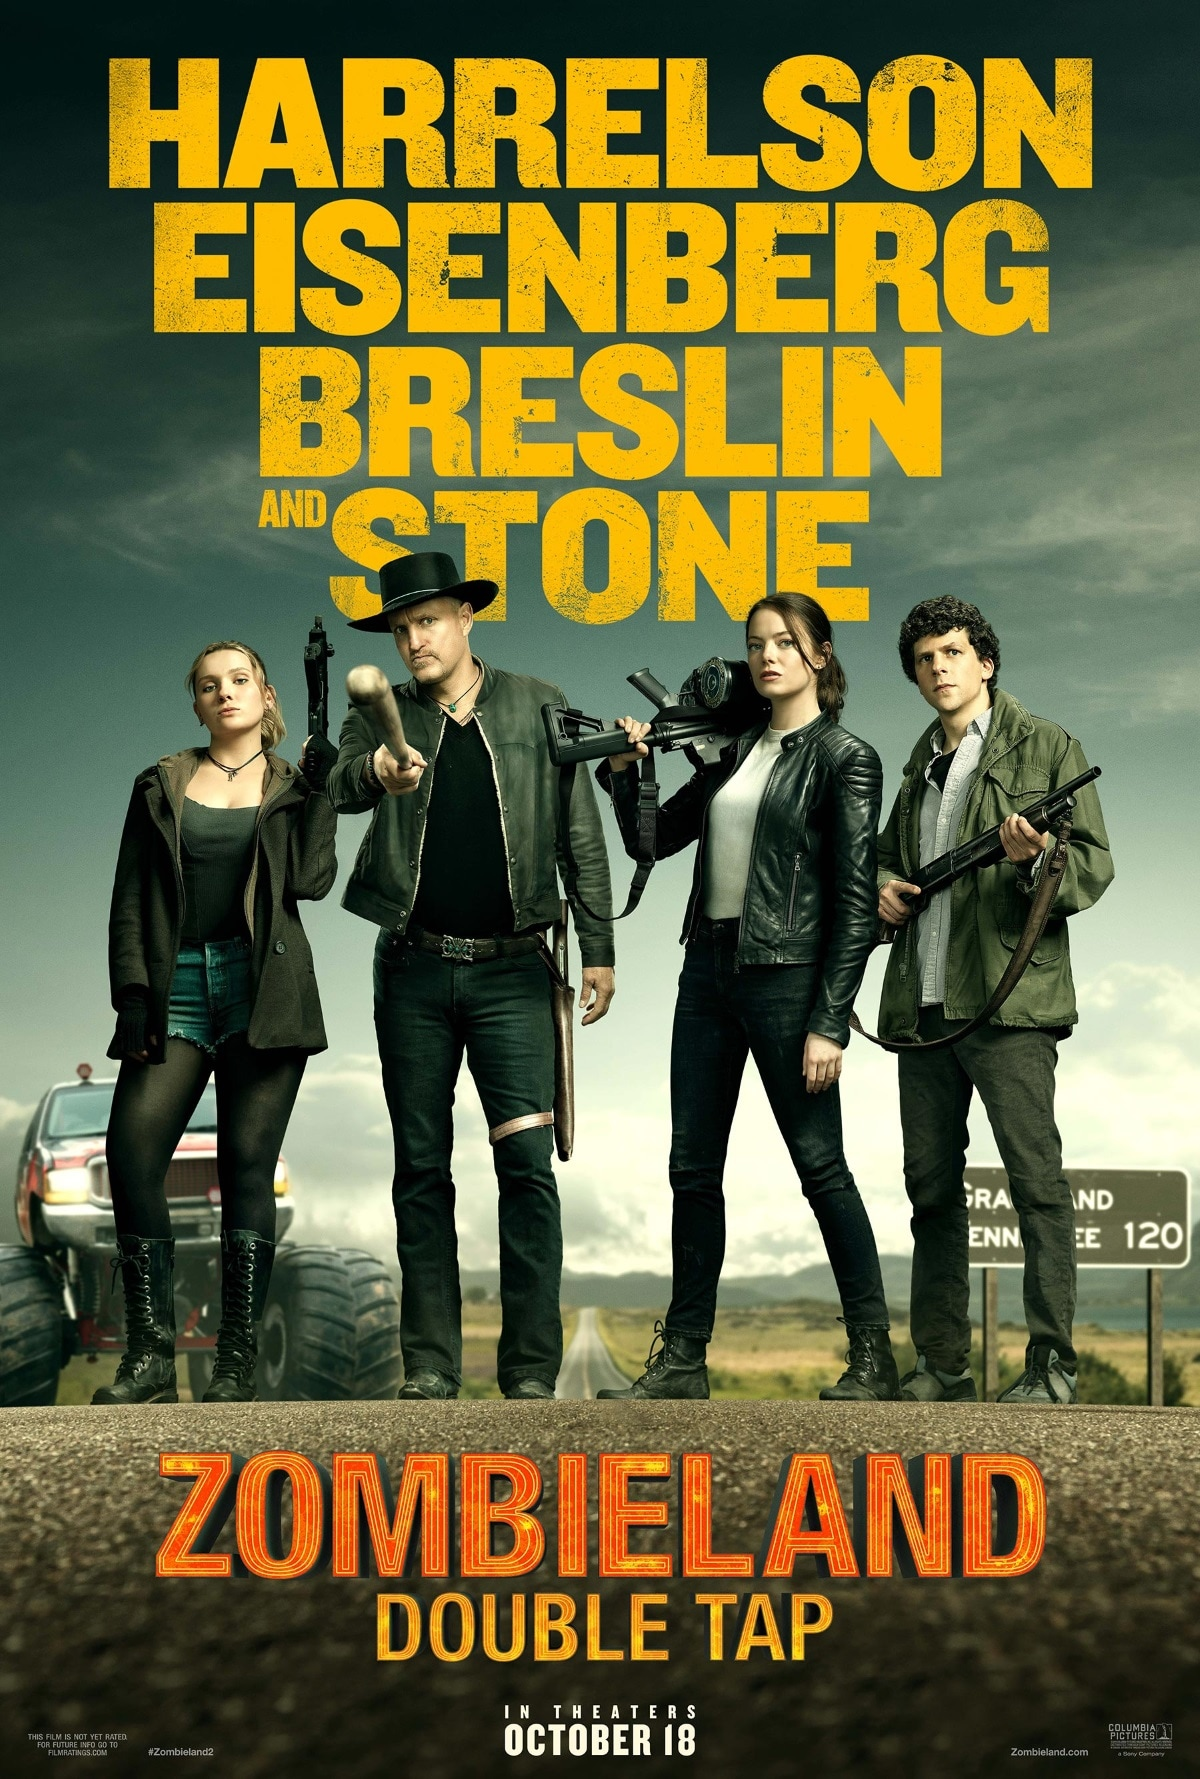 zombieland double tap poster Zombieland 2 poster